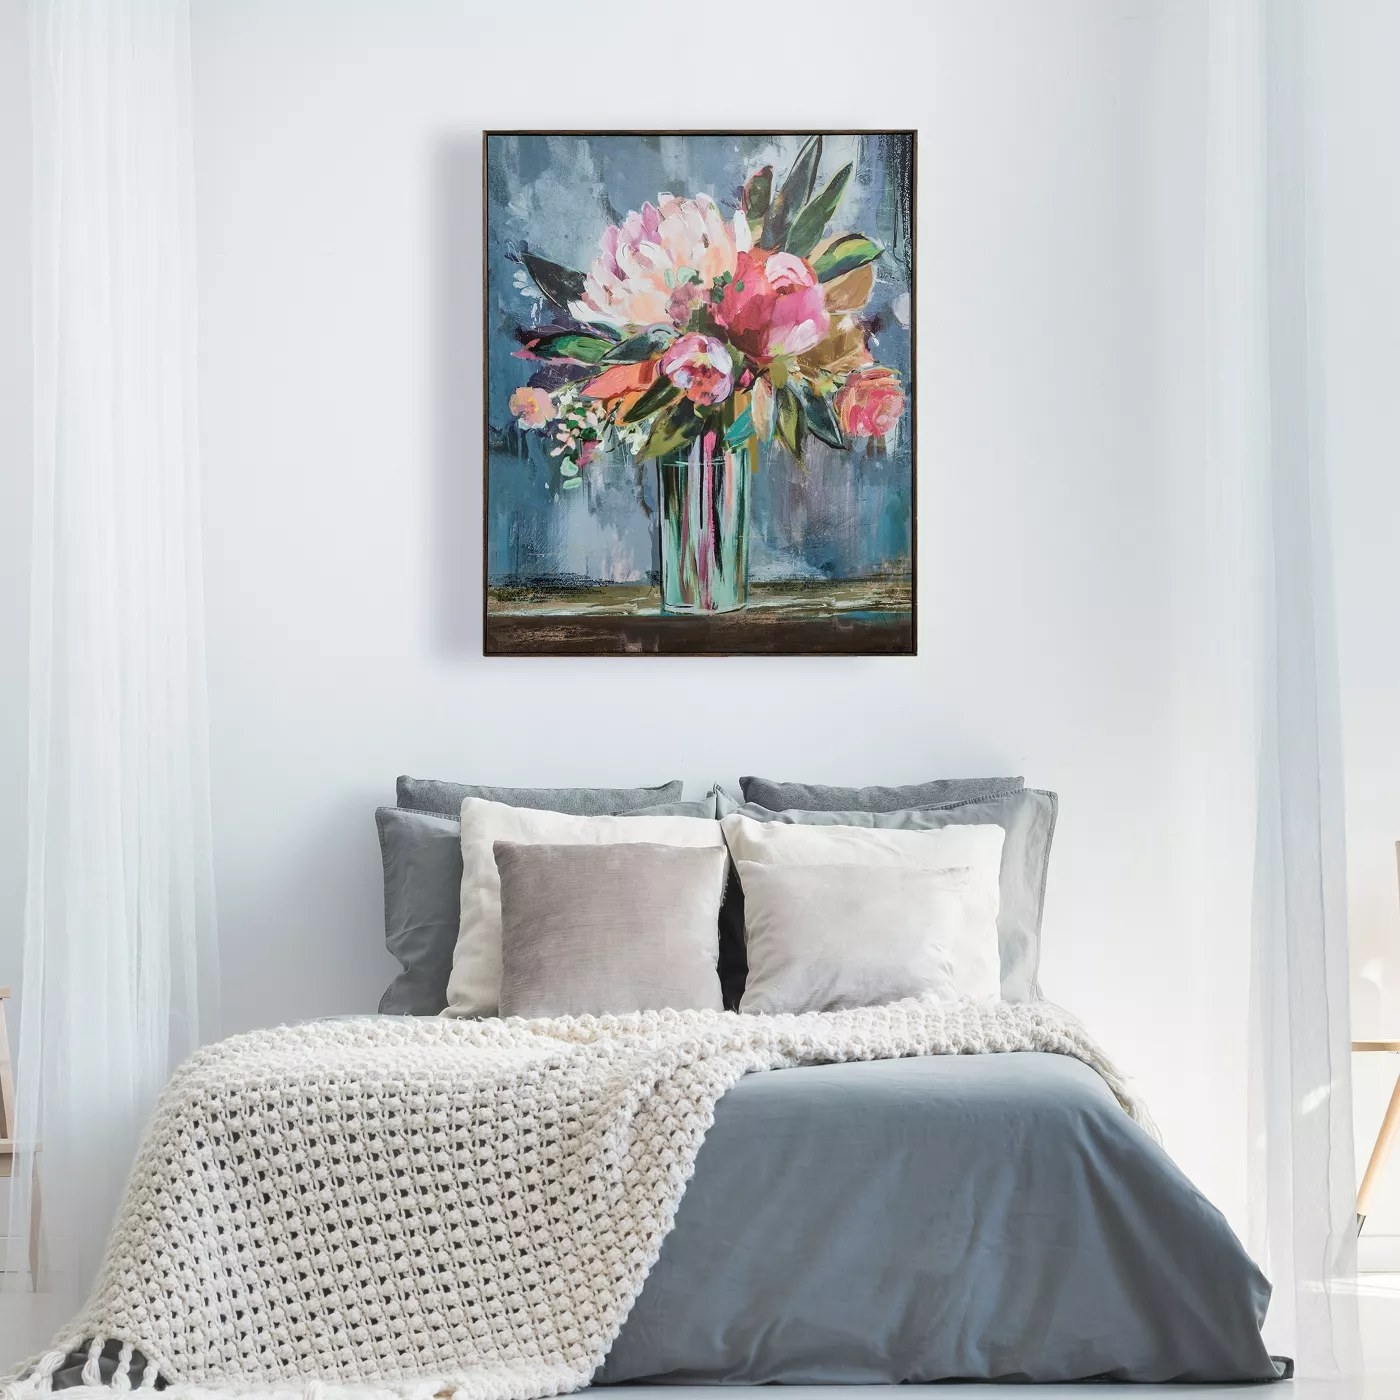 The painting of a vase filled with pink flowers on a blue background hanging in a bedroom